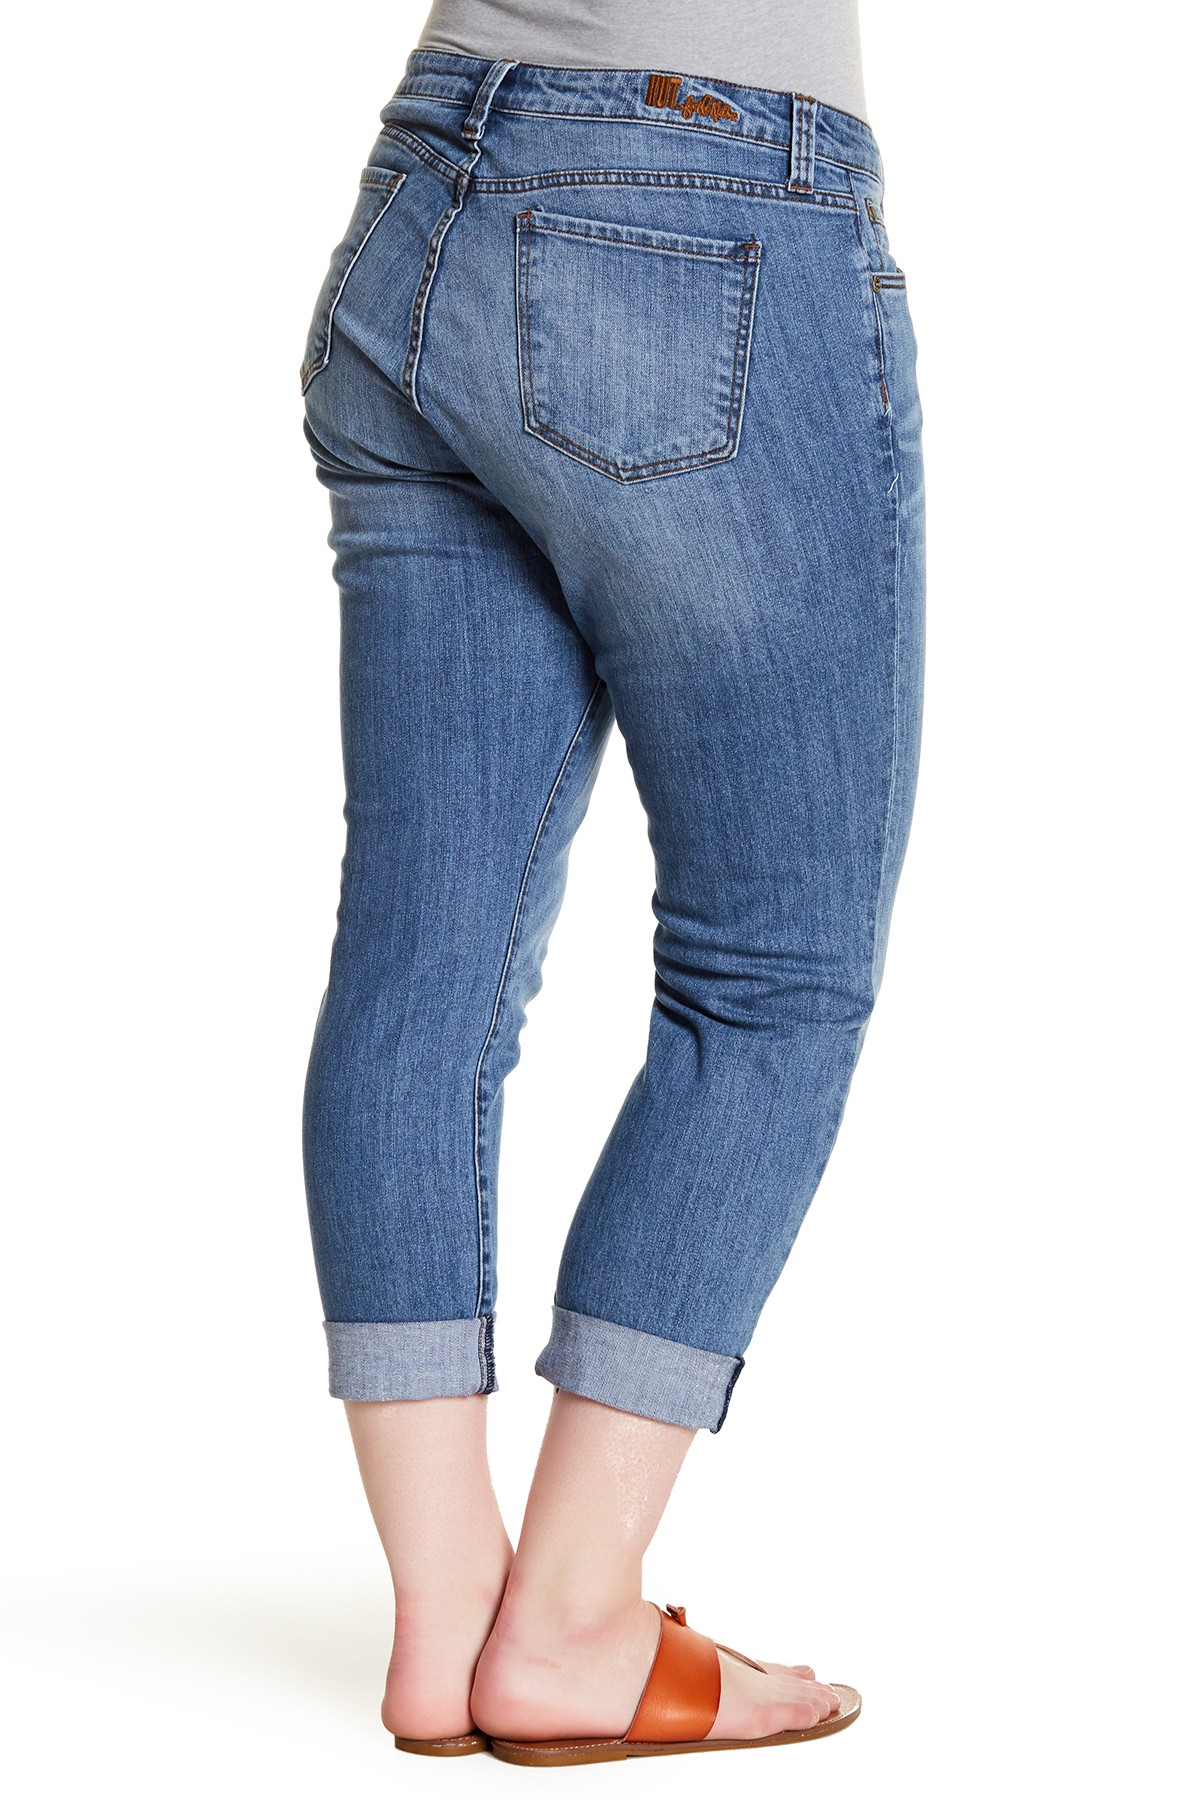 93a99b6c907de Kut from the Kloth NEW Women s 18W Plus Boyfriend Stretch Cuffed Jeans -  Walmart.com